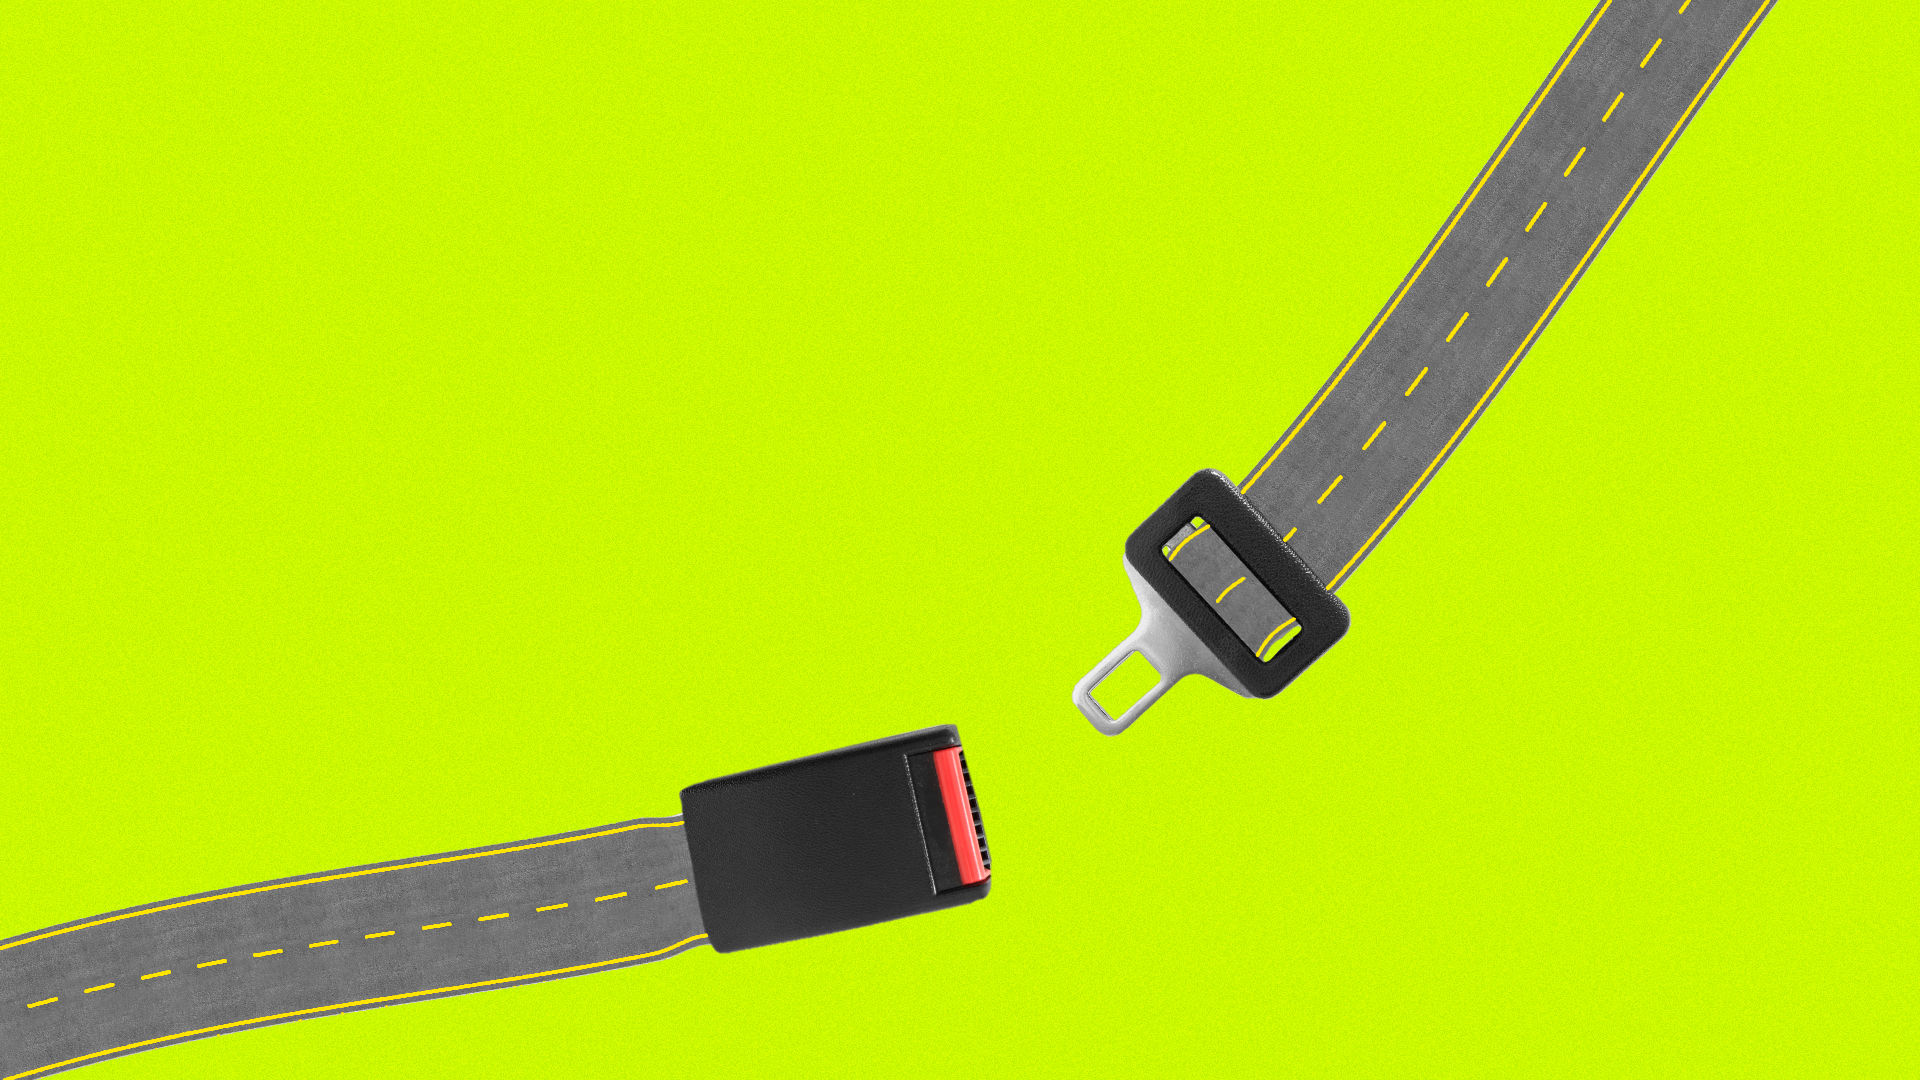 Illustration of an unfastened seat belt, with the belt replaced with a road